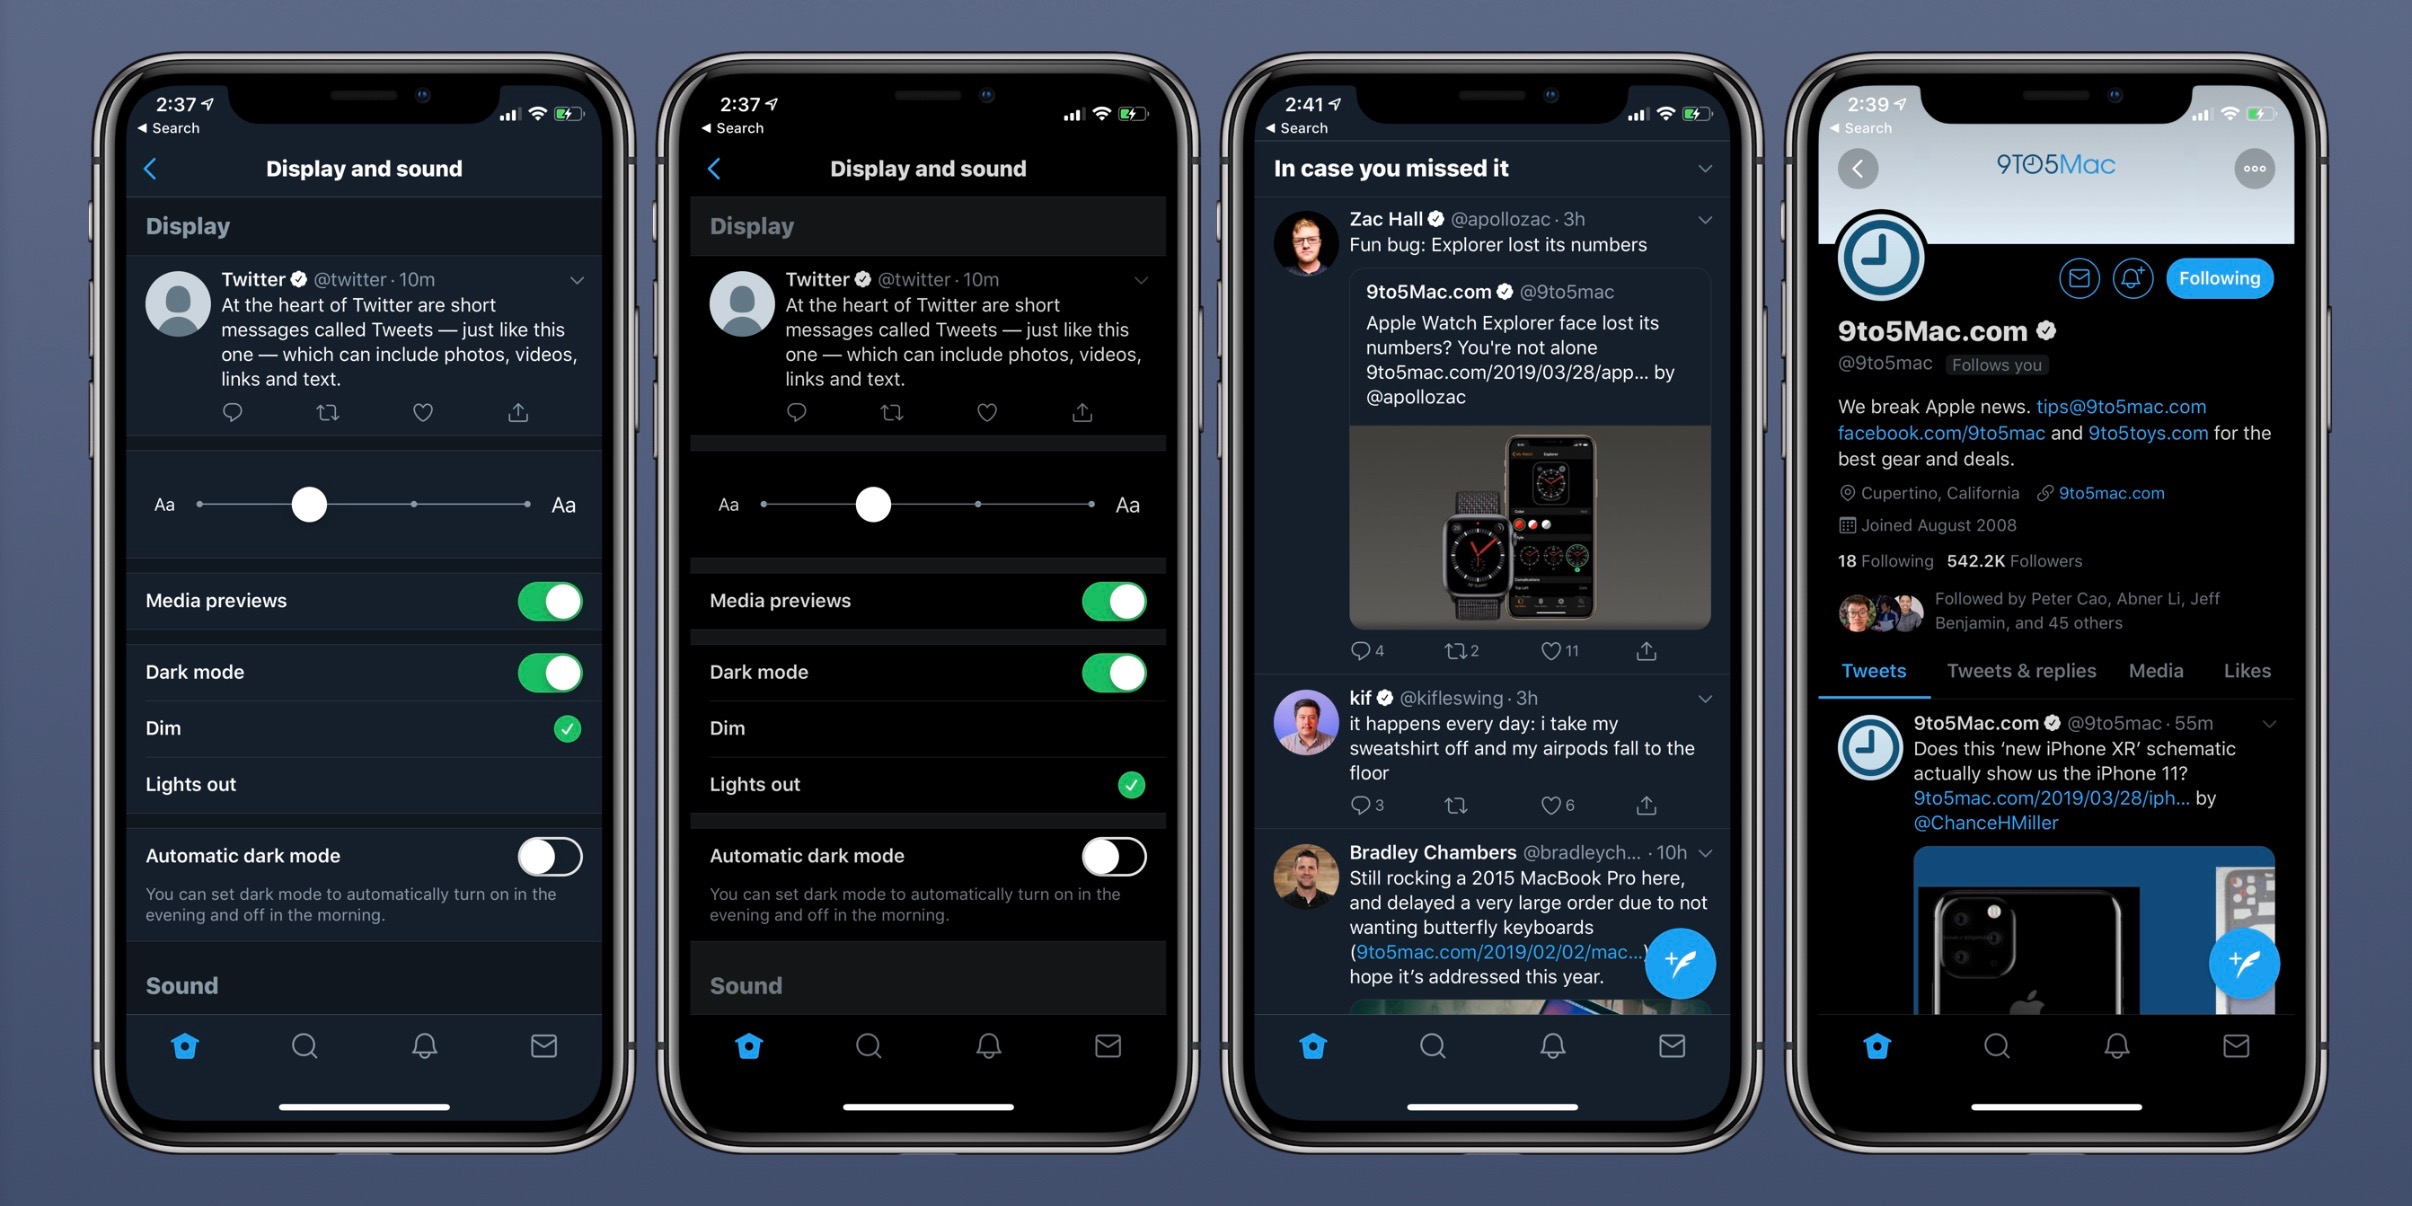 How to use Twitter's automatic and black dark modes on iPhone